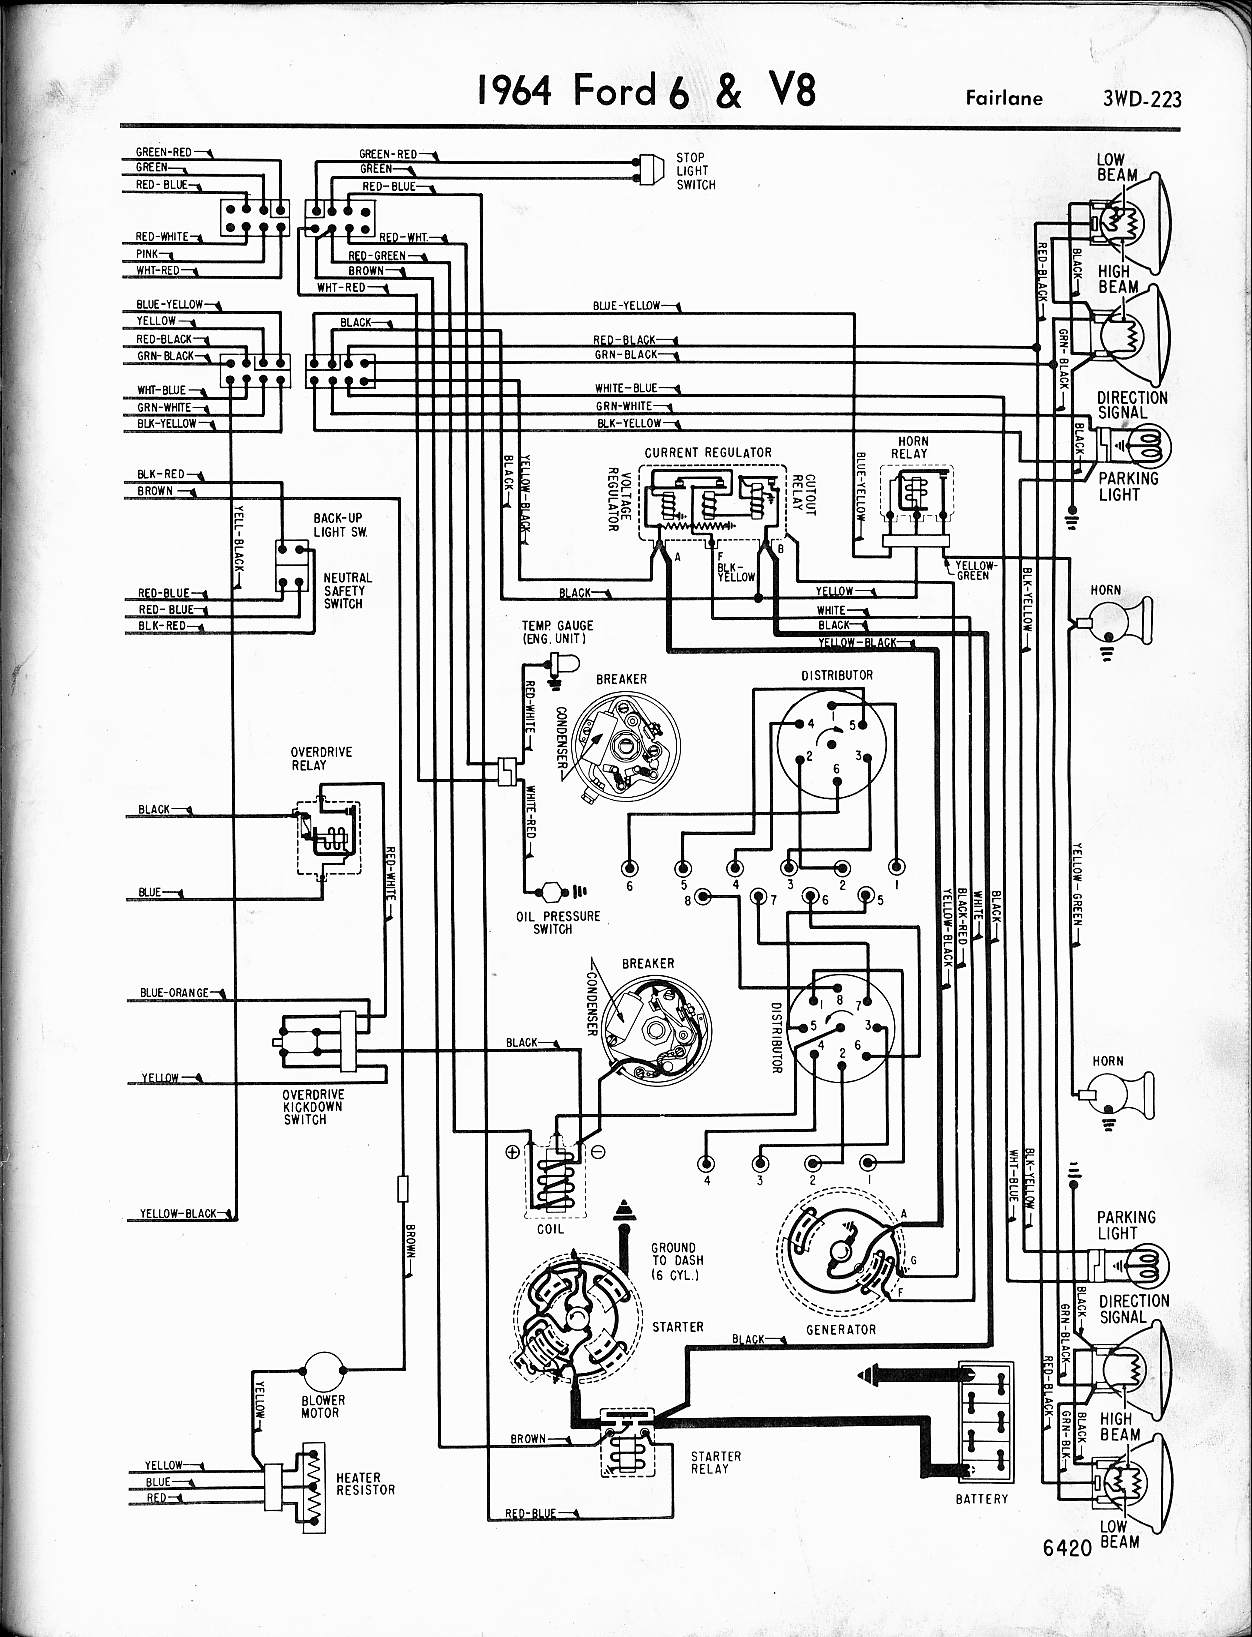 Ford Truck Dash Light Wiring Library Fuel Tank Selector Valve Diagram F150 1964 6 V8 Fairlane Right